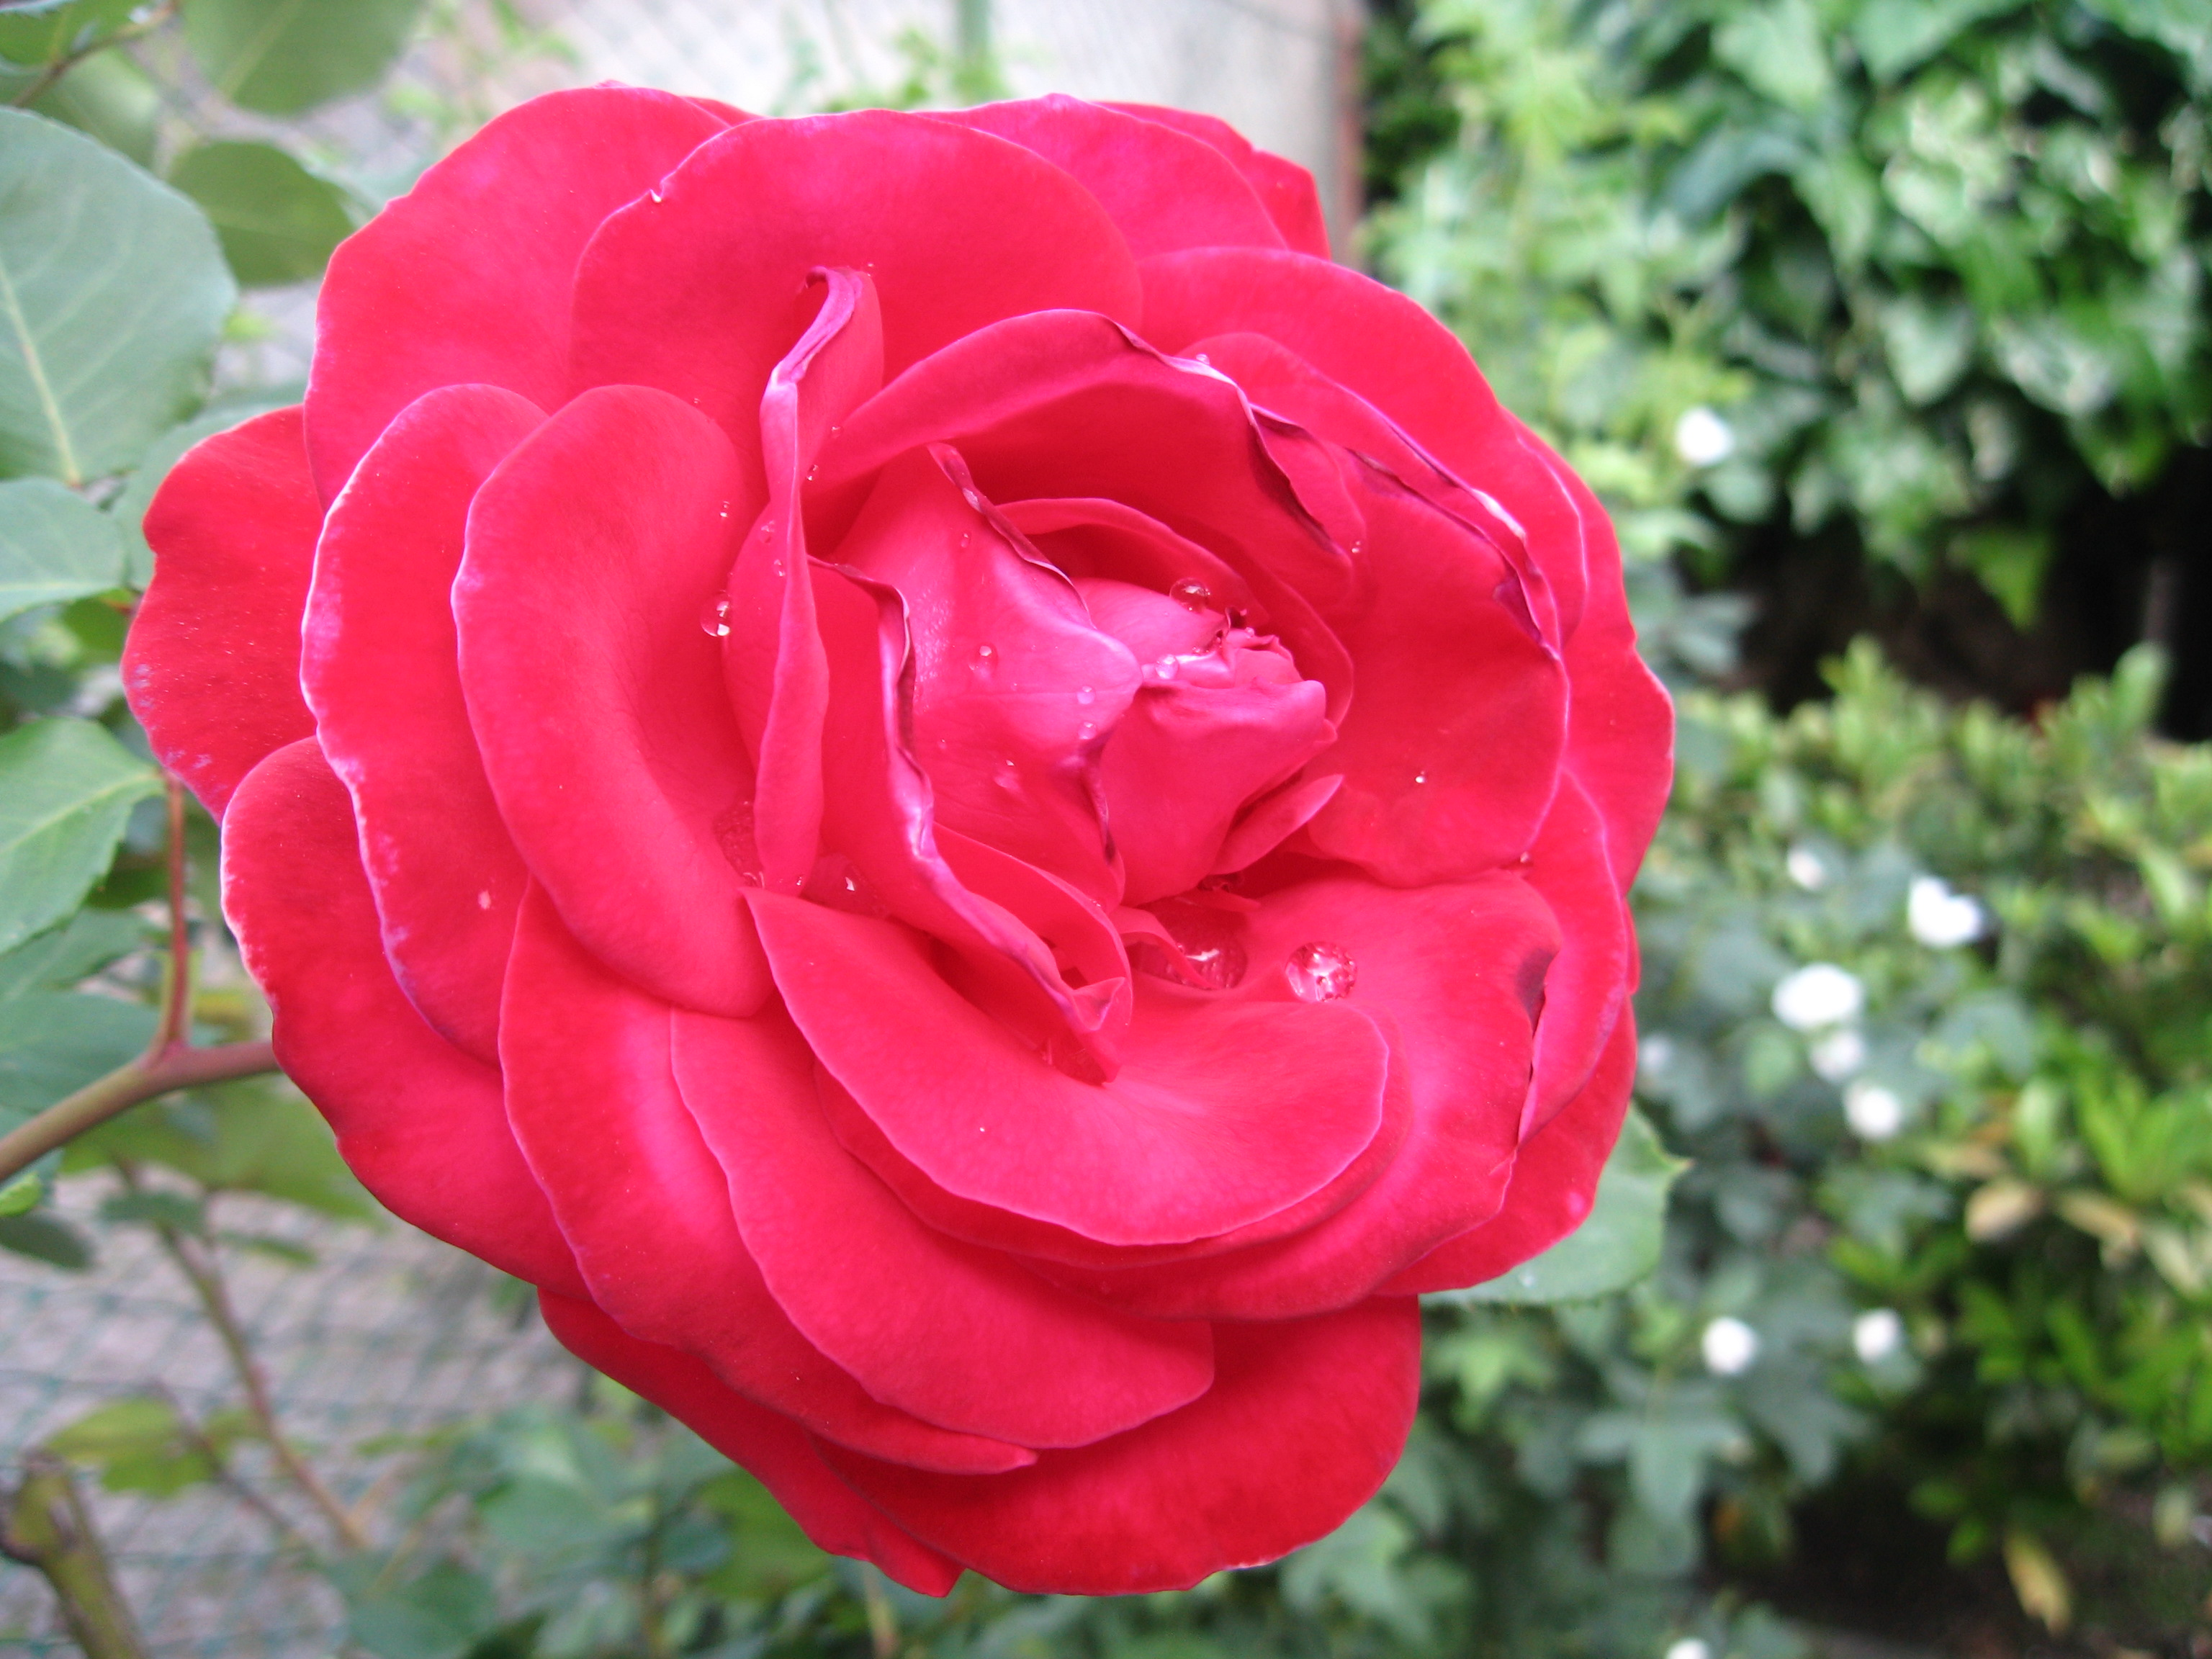 A red rose with dewdrops 1